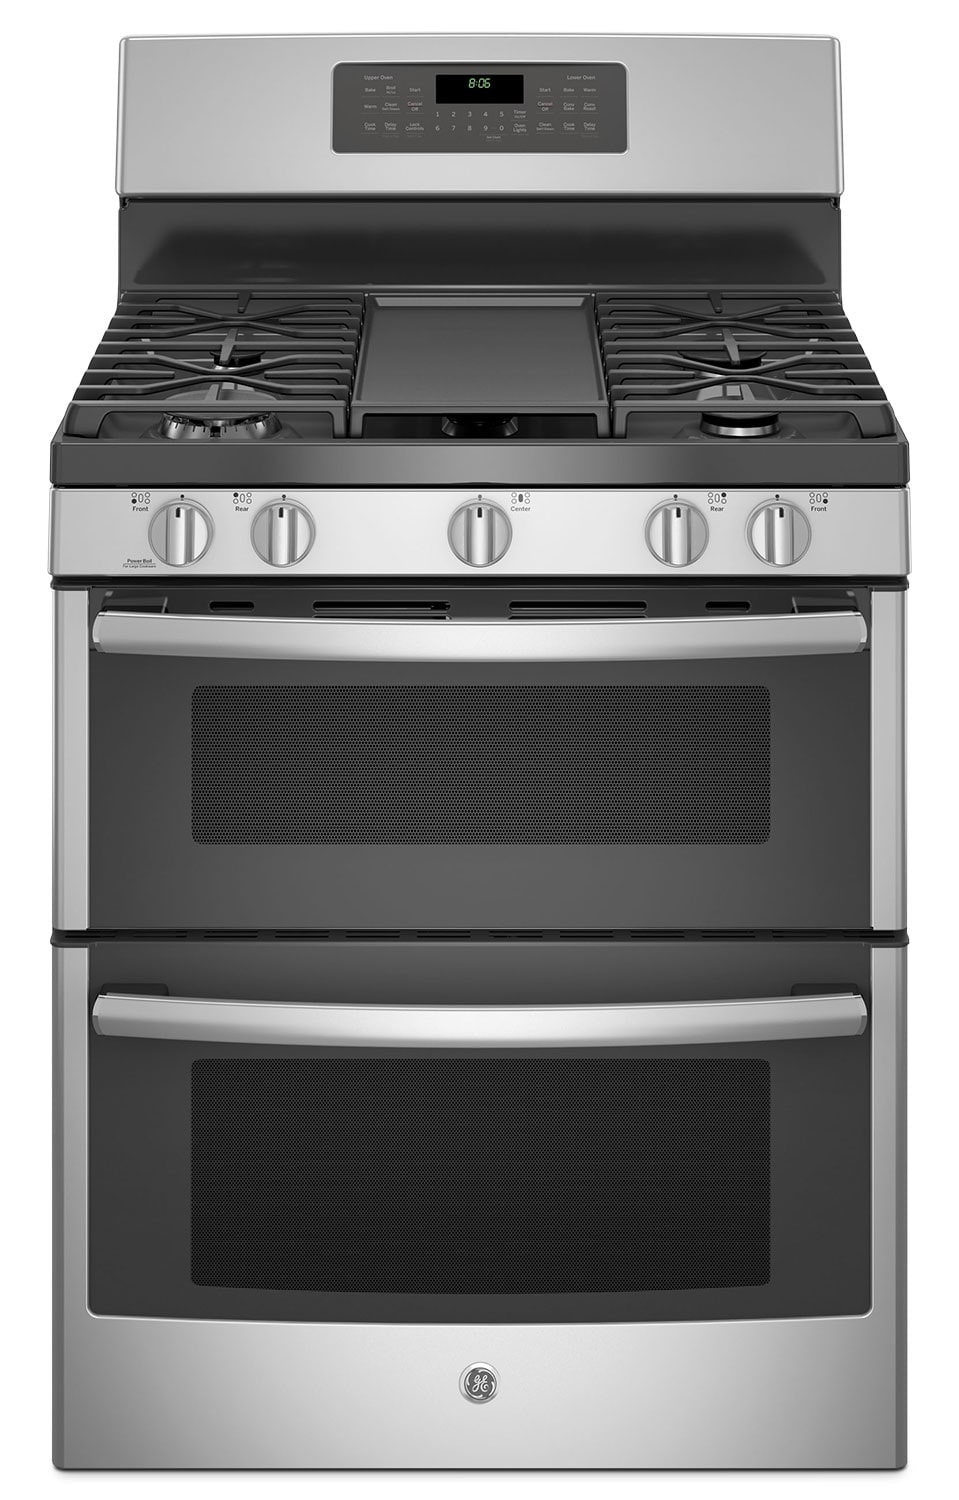 GE 6.8 Cu. Ft. Freestanding Double Oven Gas Range – JCGB860SEJSS